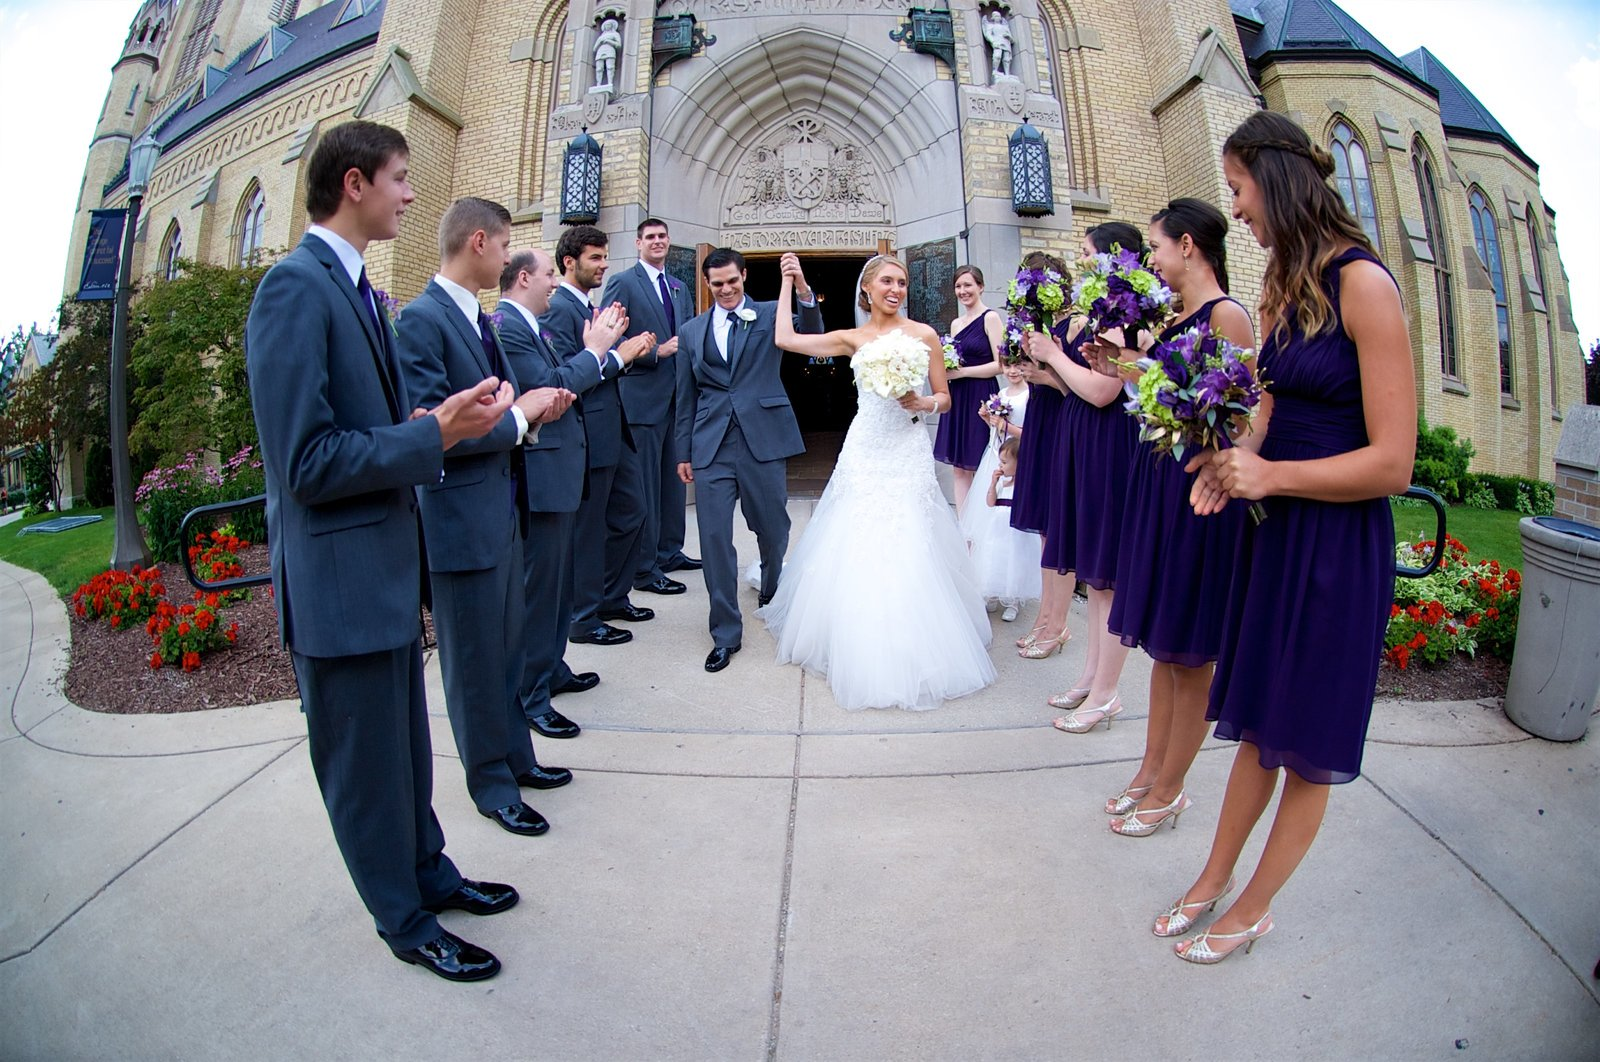 The Bride and Groom Exit the Basilica of the Sacred Heart at the famous God, Country, Notre Dame door, Notre Dame, IN